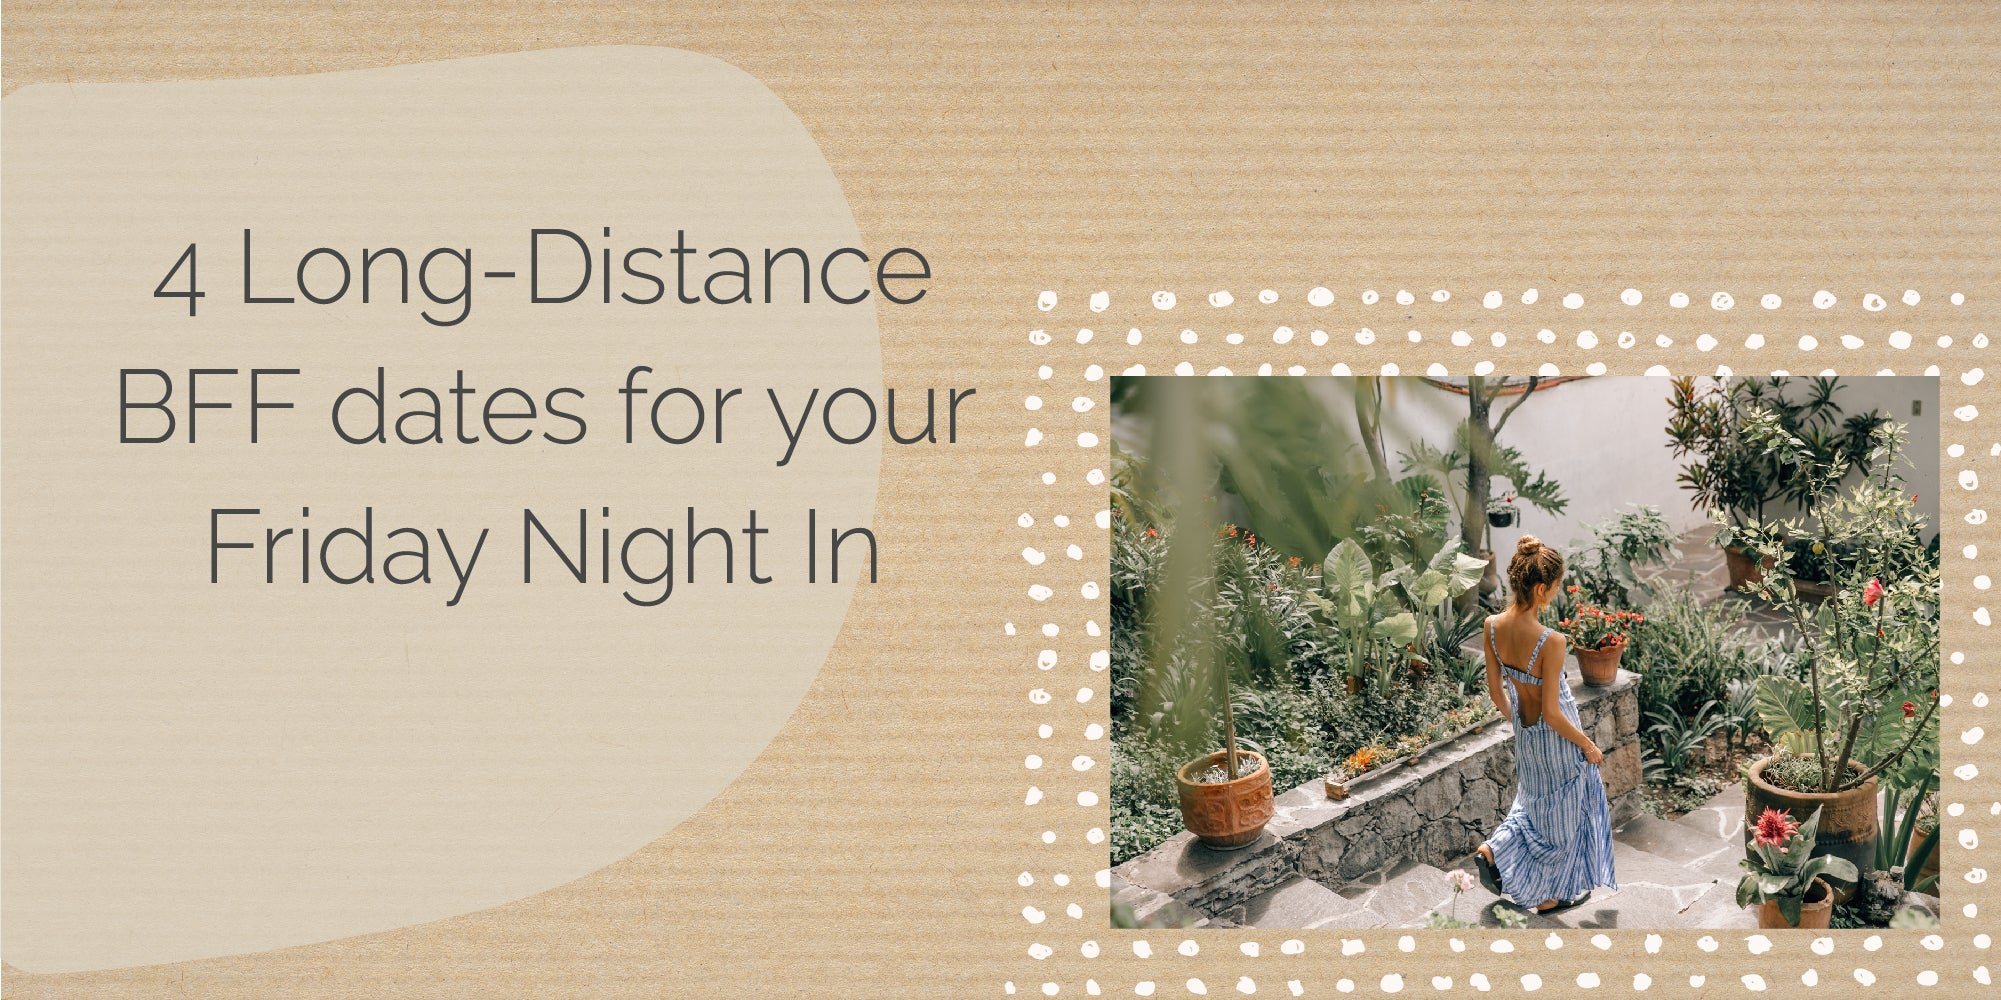 4 long distance BFF dates for your Friday night in